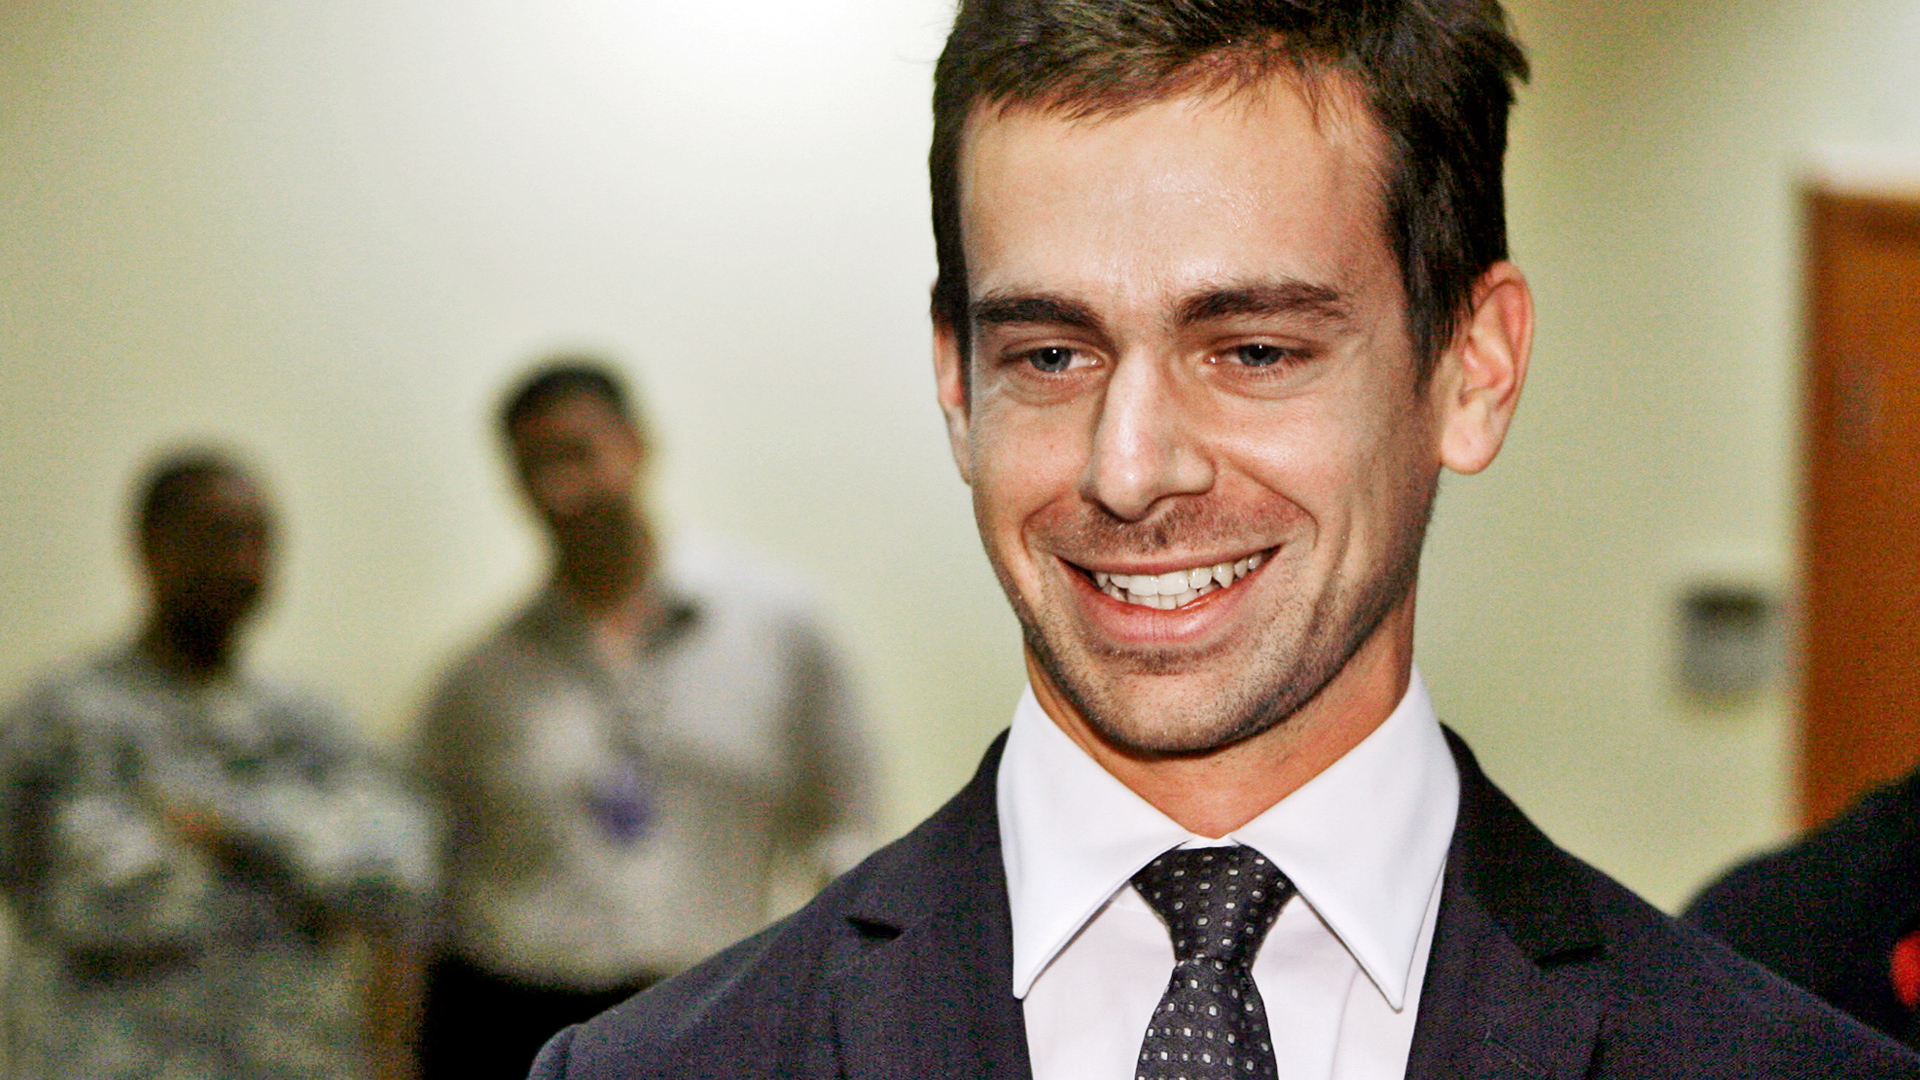 3021162-poster-p-1-the-twitter-ipo-players-club-jack-dorsey